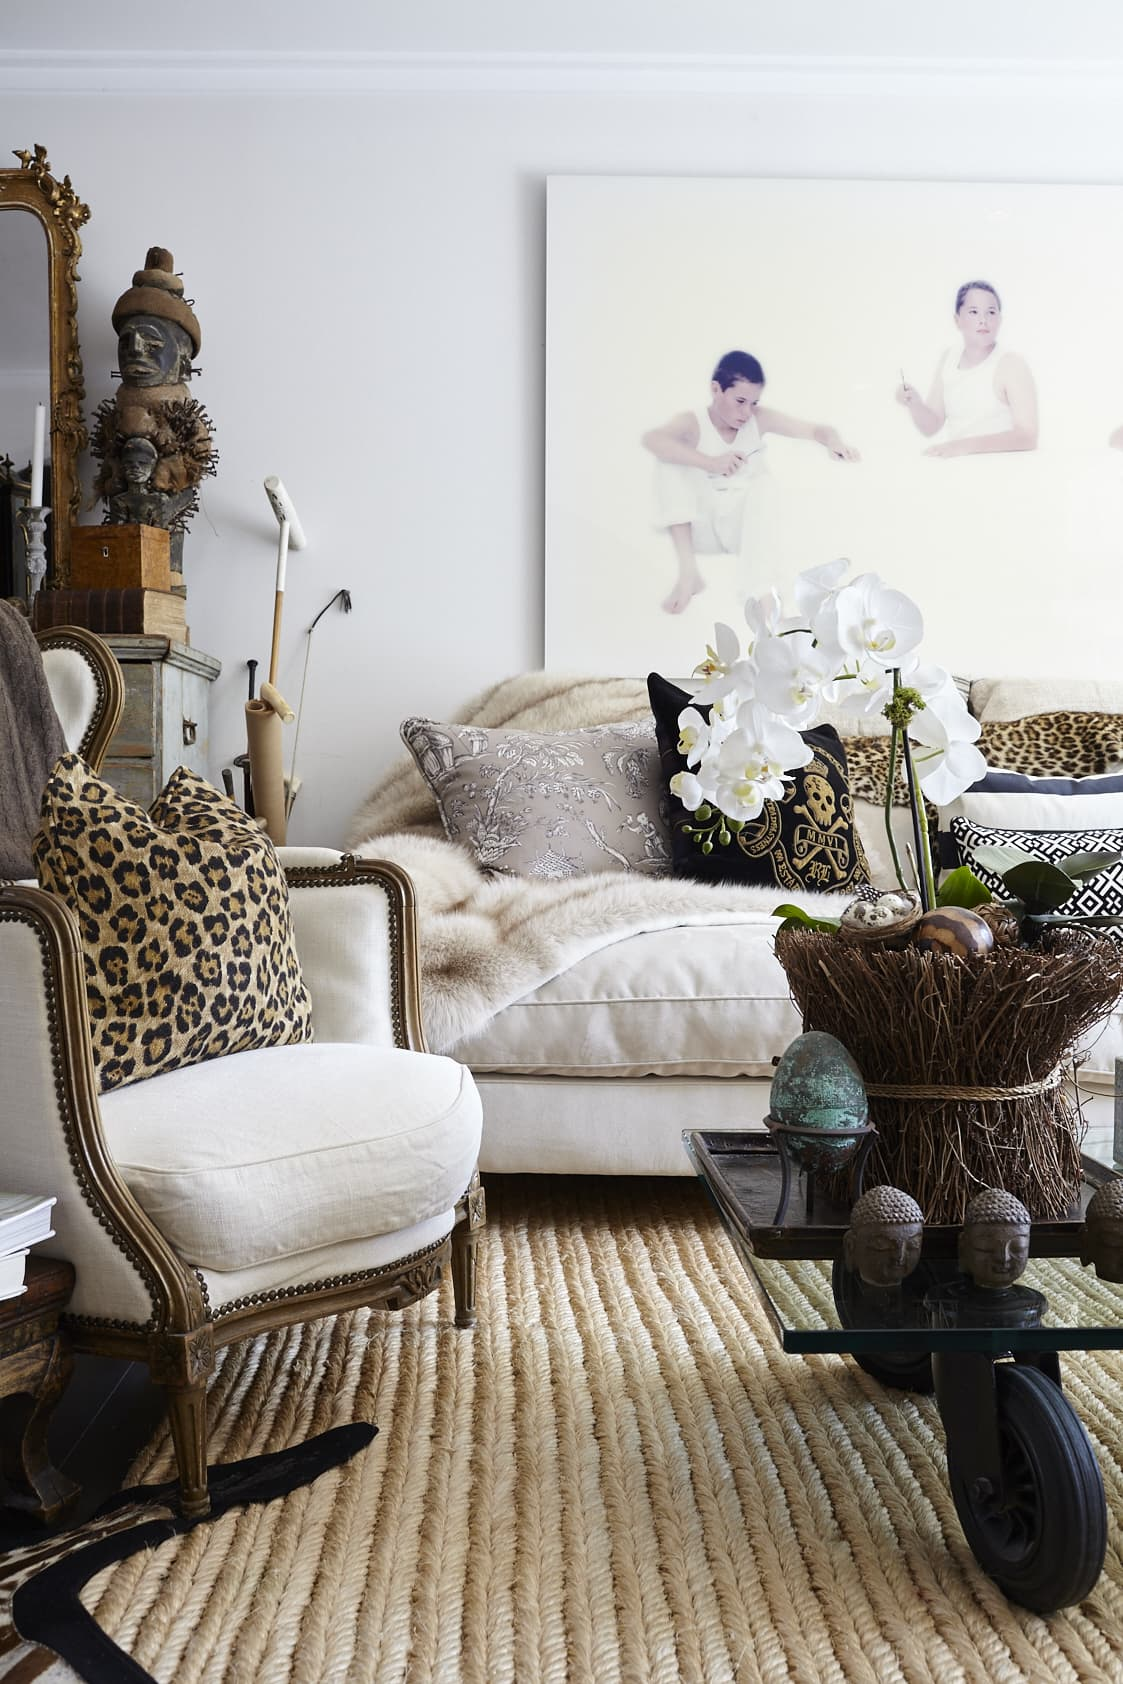 Mixing old furniture with new, Anna is not shying away from combining styles. The 18th-century chair is from Bukowskis. The African mask is from a gallery in Gothenburg and between the dresser and the couch are some polo sticks as a fun detail.